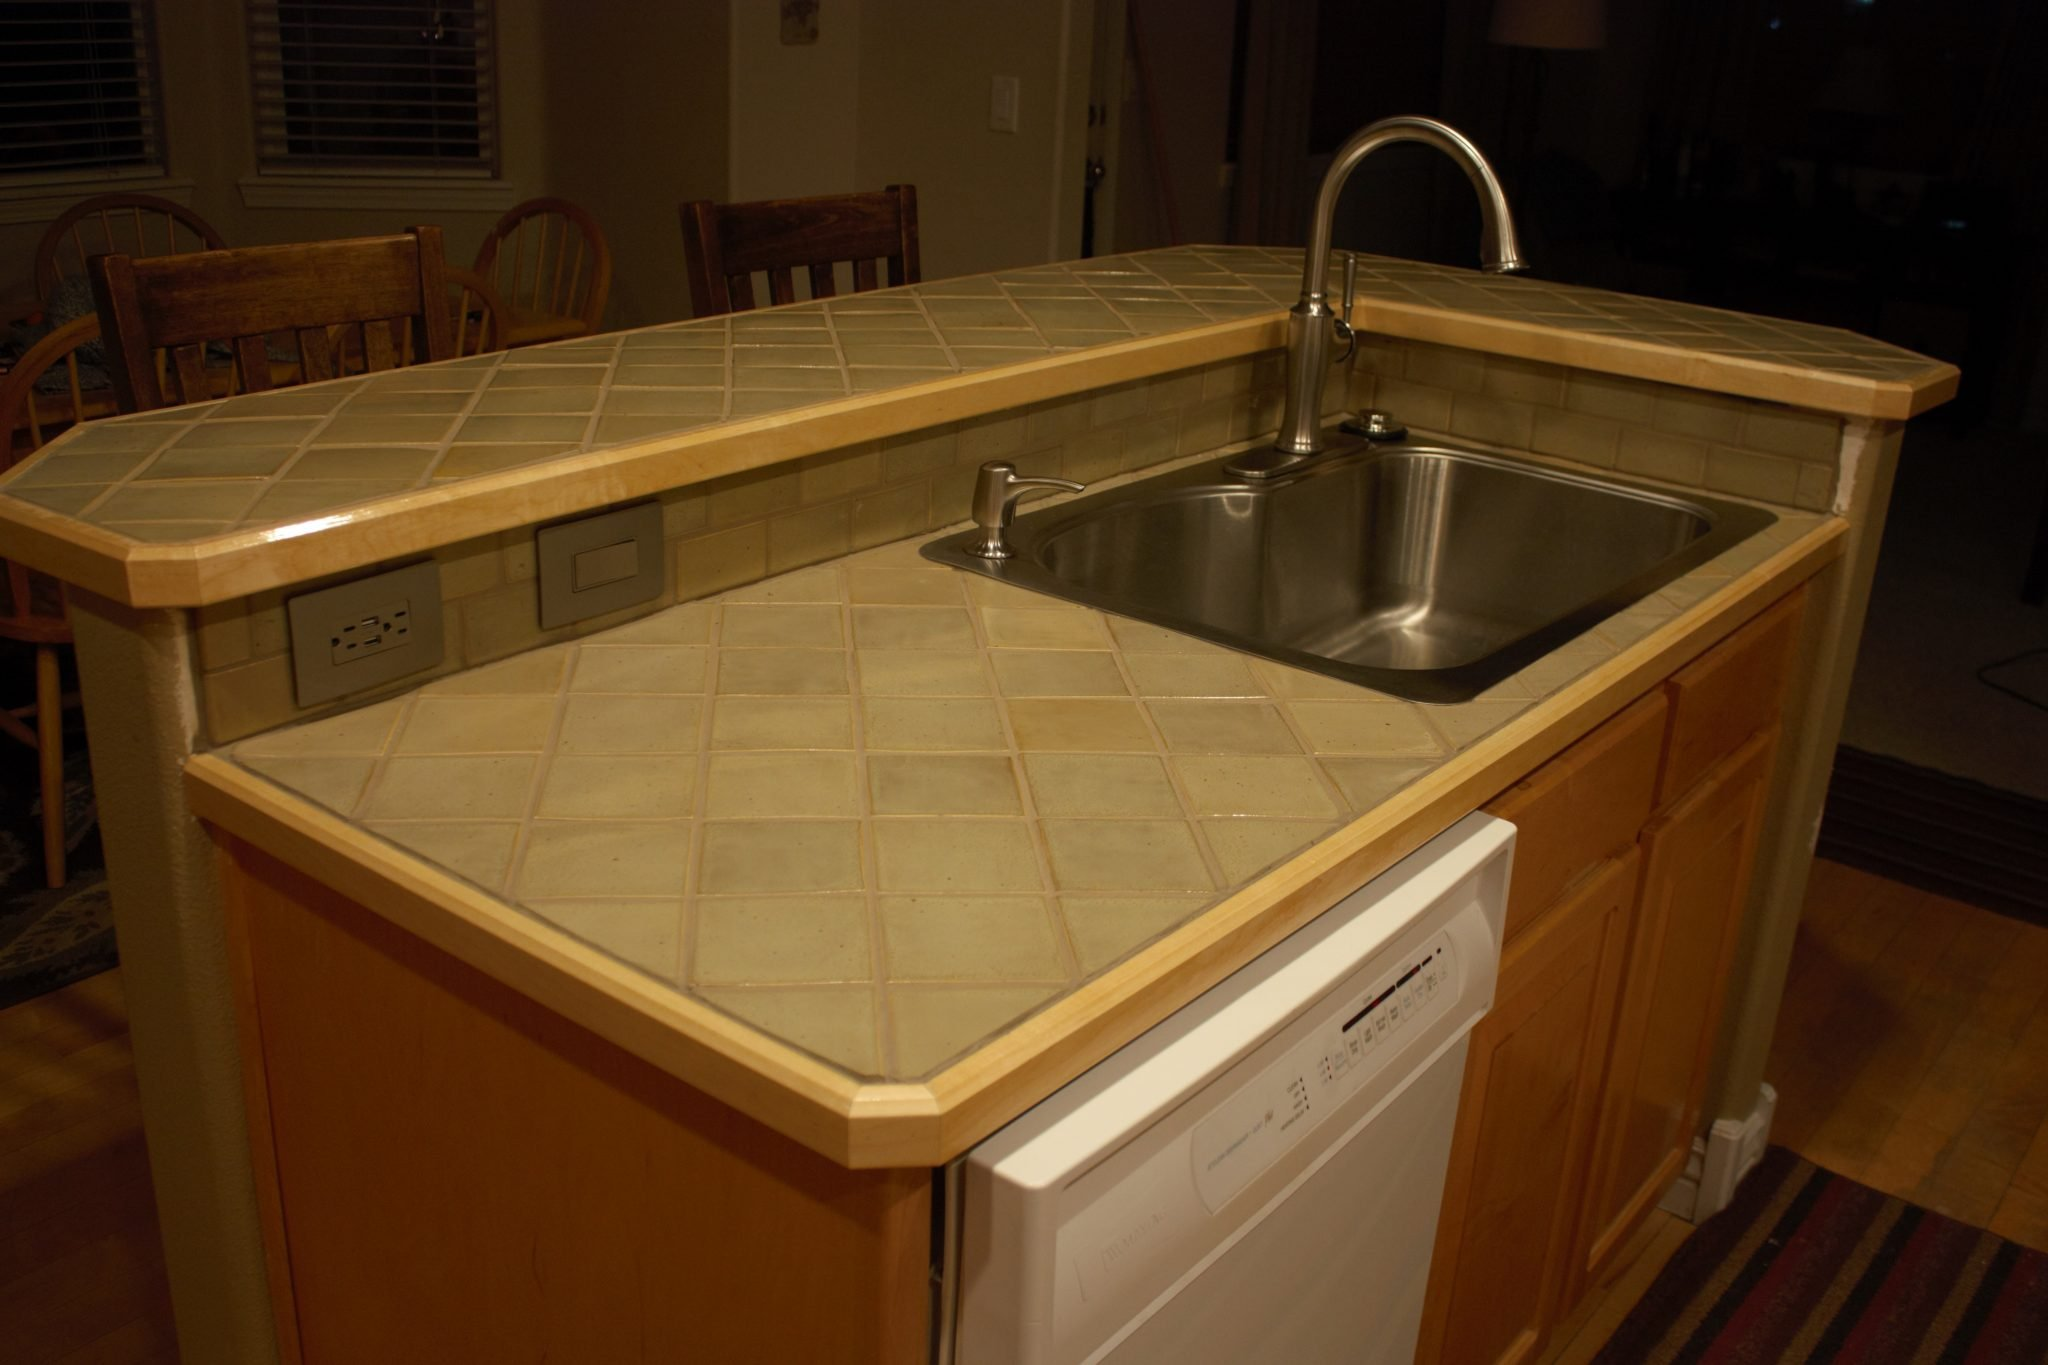 Ceramic Tile Countertops Add Beauty And Personality To A Home.